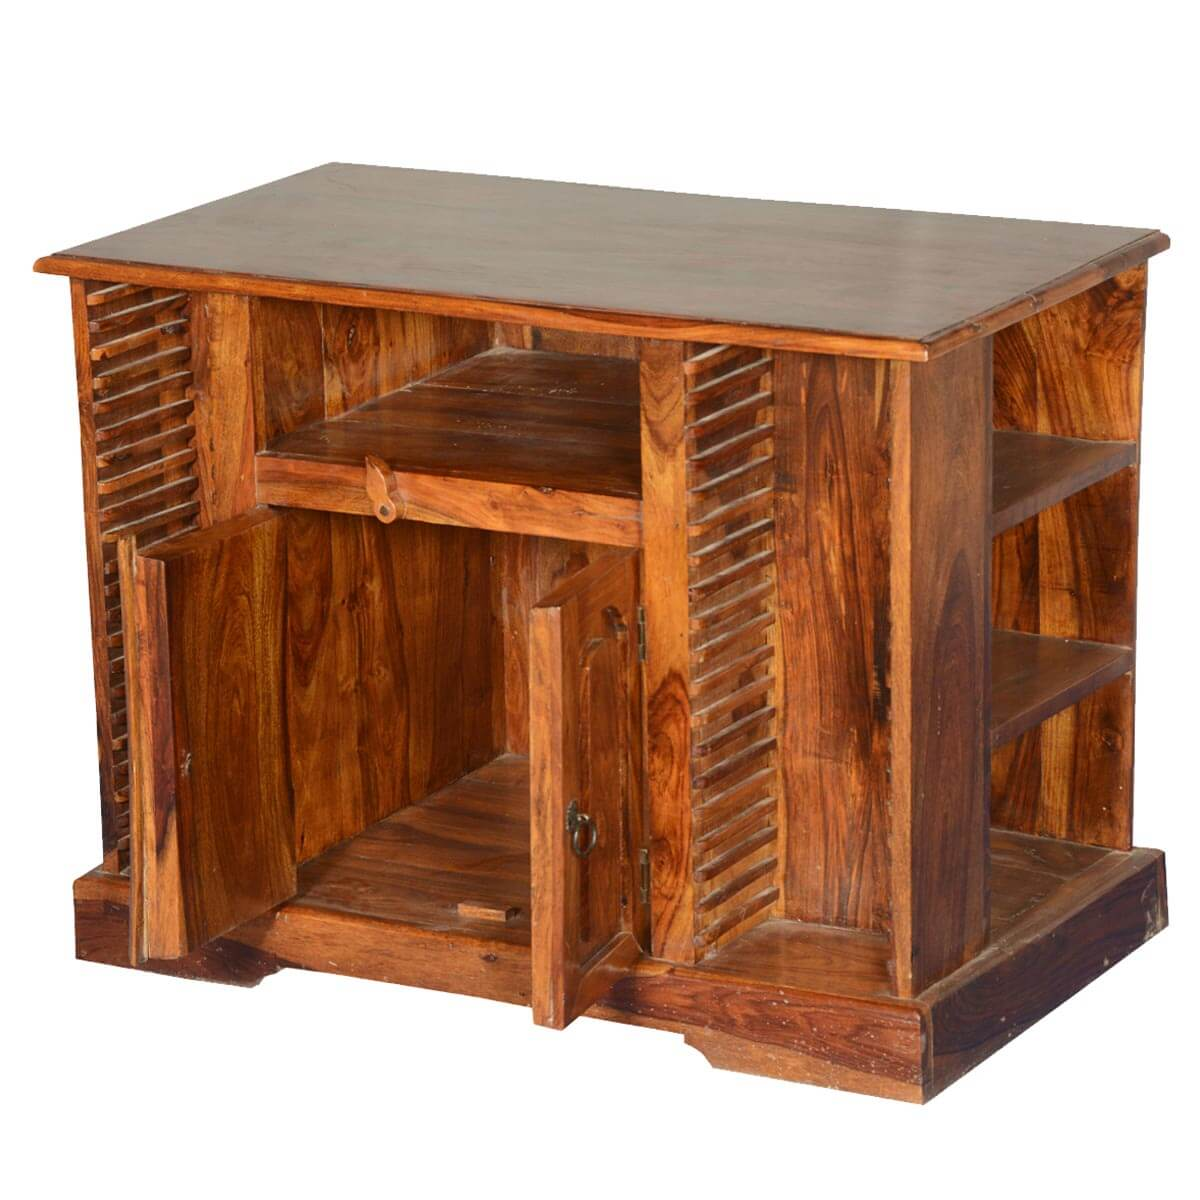 Ivesdale rustic solid wood side open media console tv stand